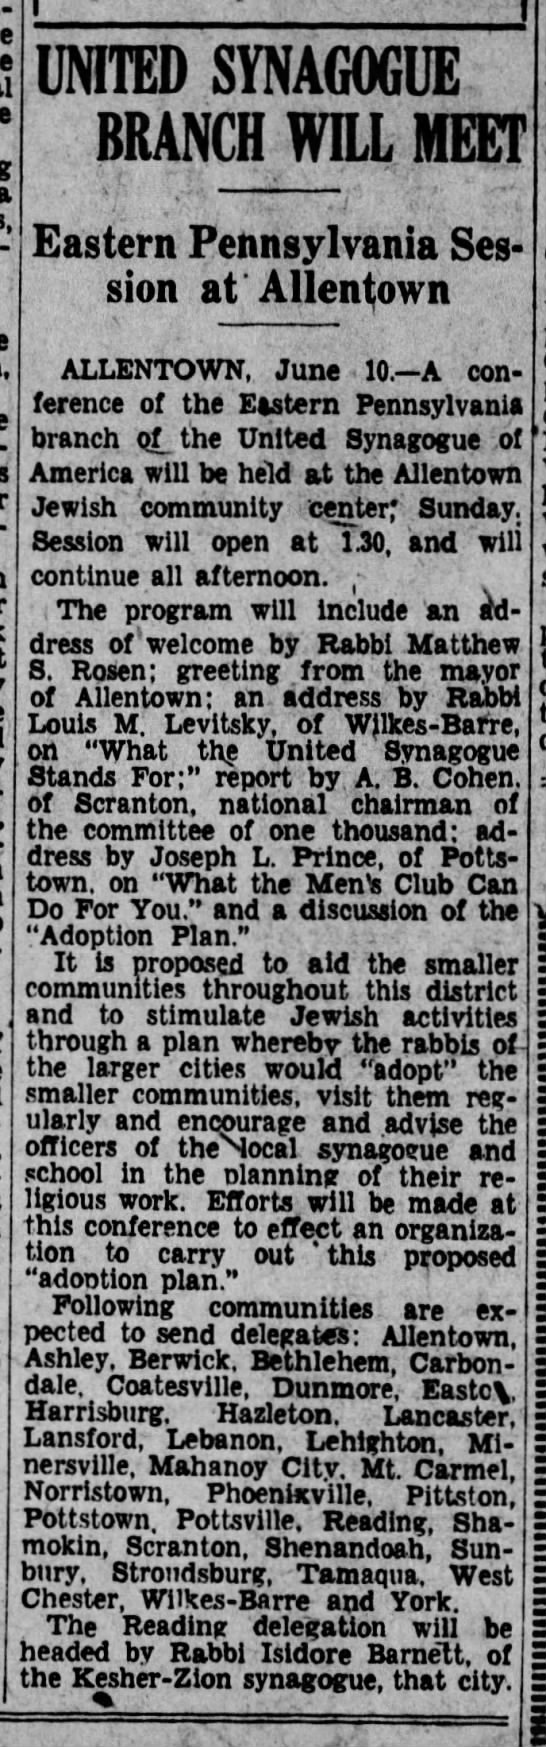 United Synagogue of America branch will meet at Allentown Jewish Community Center, 11 Jun 1931 - UNITED SYNAGOGUE BRANCH WILL MEET Eastern...